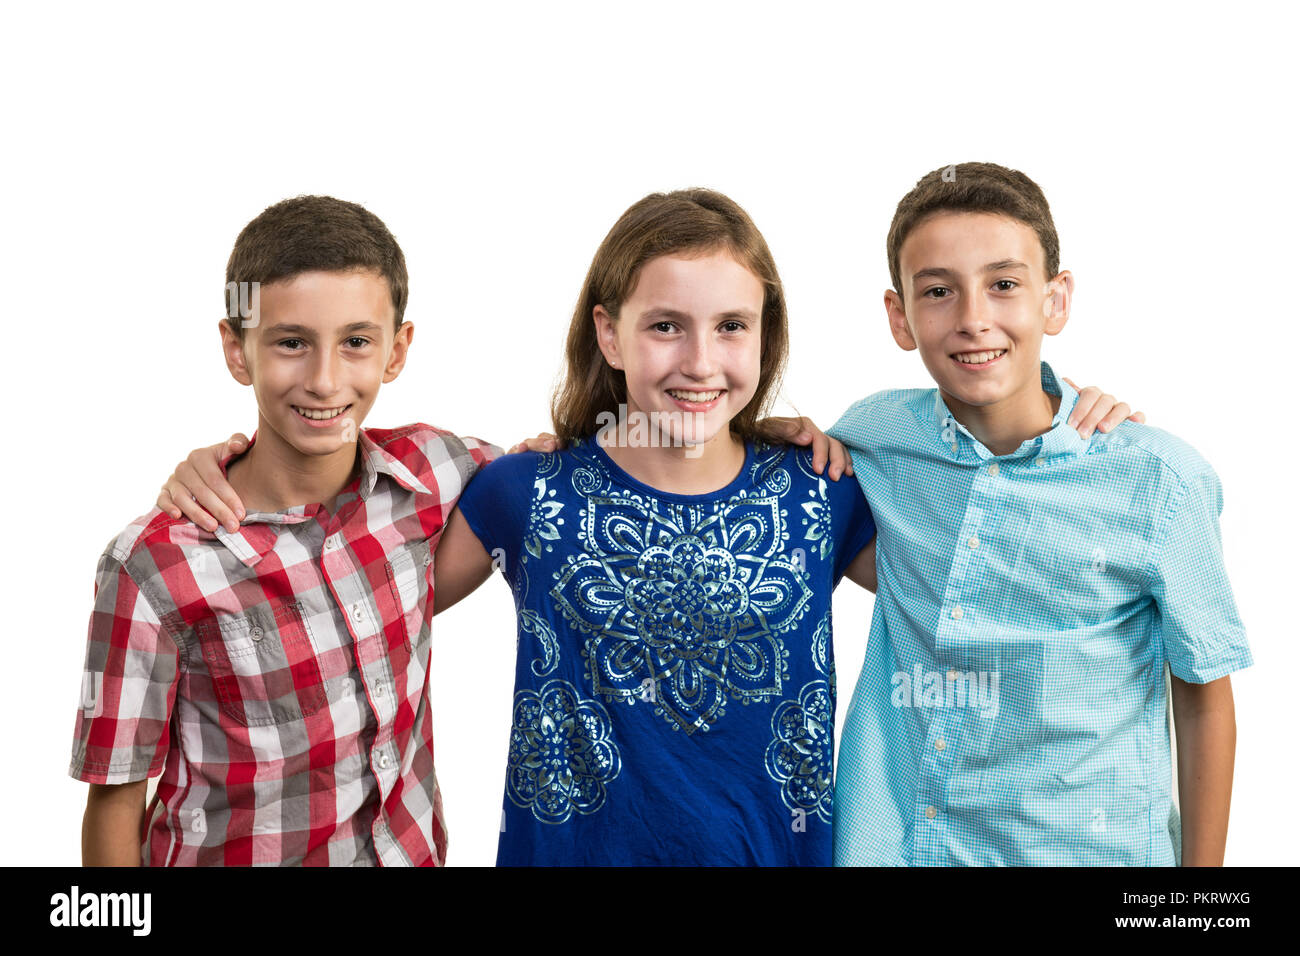 Tweenager triples, two brothers and one sister, embracing